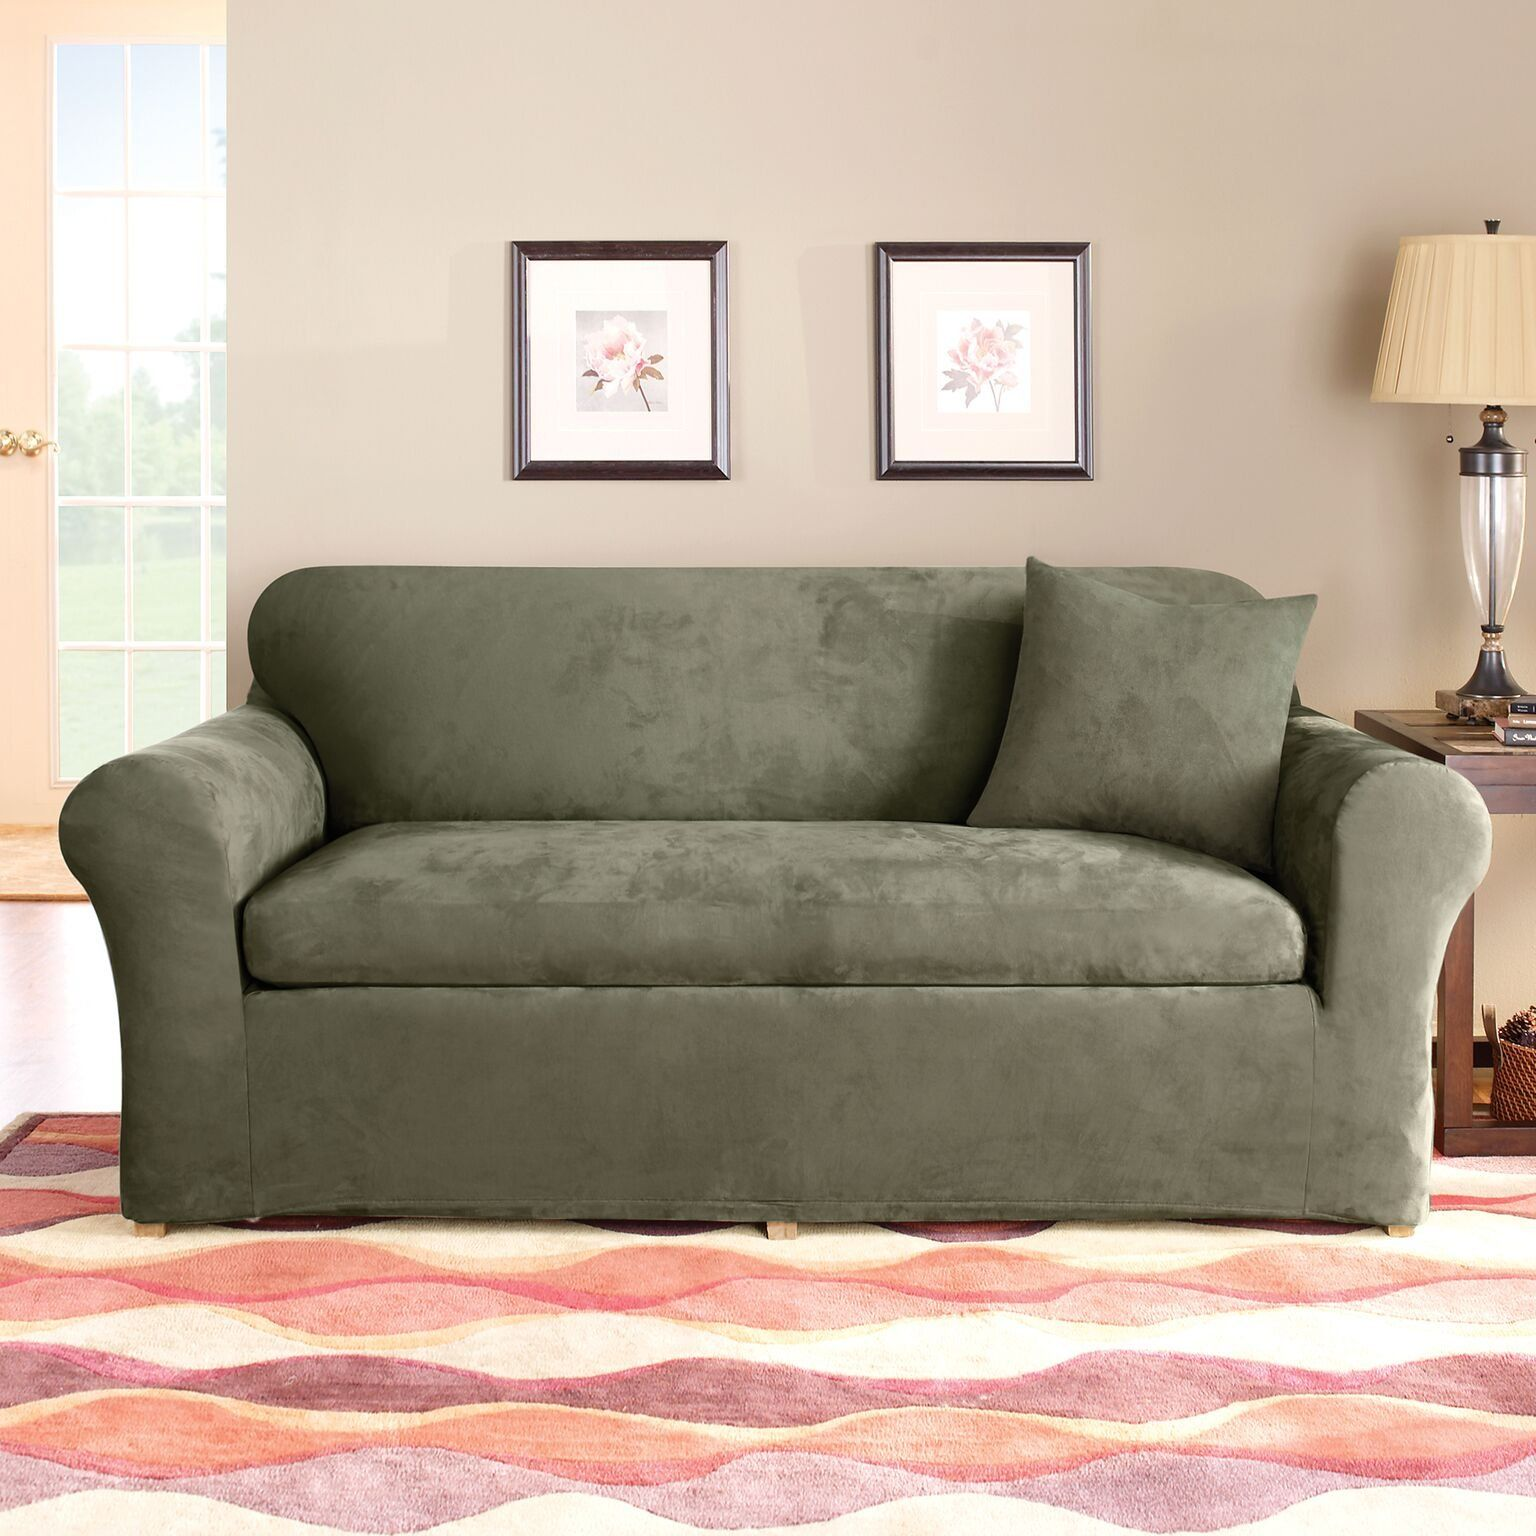 Sure Fit Sf37532 3piece Stretch Suede Dark Green Sofa You Can Find More Details By Visiting The I Cushions On Sofa Loveseat Slipcovers Slipcovers